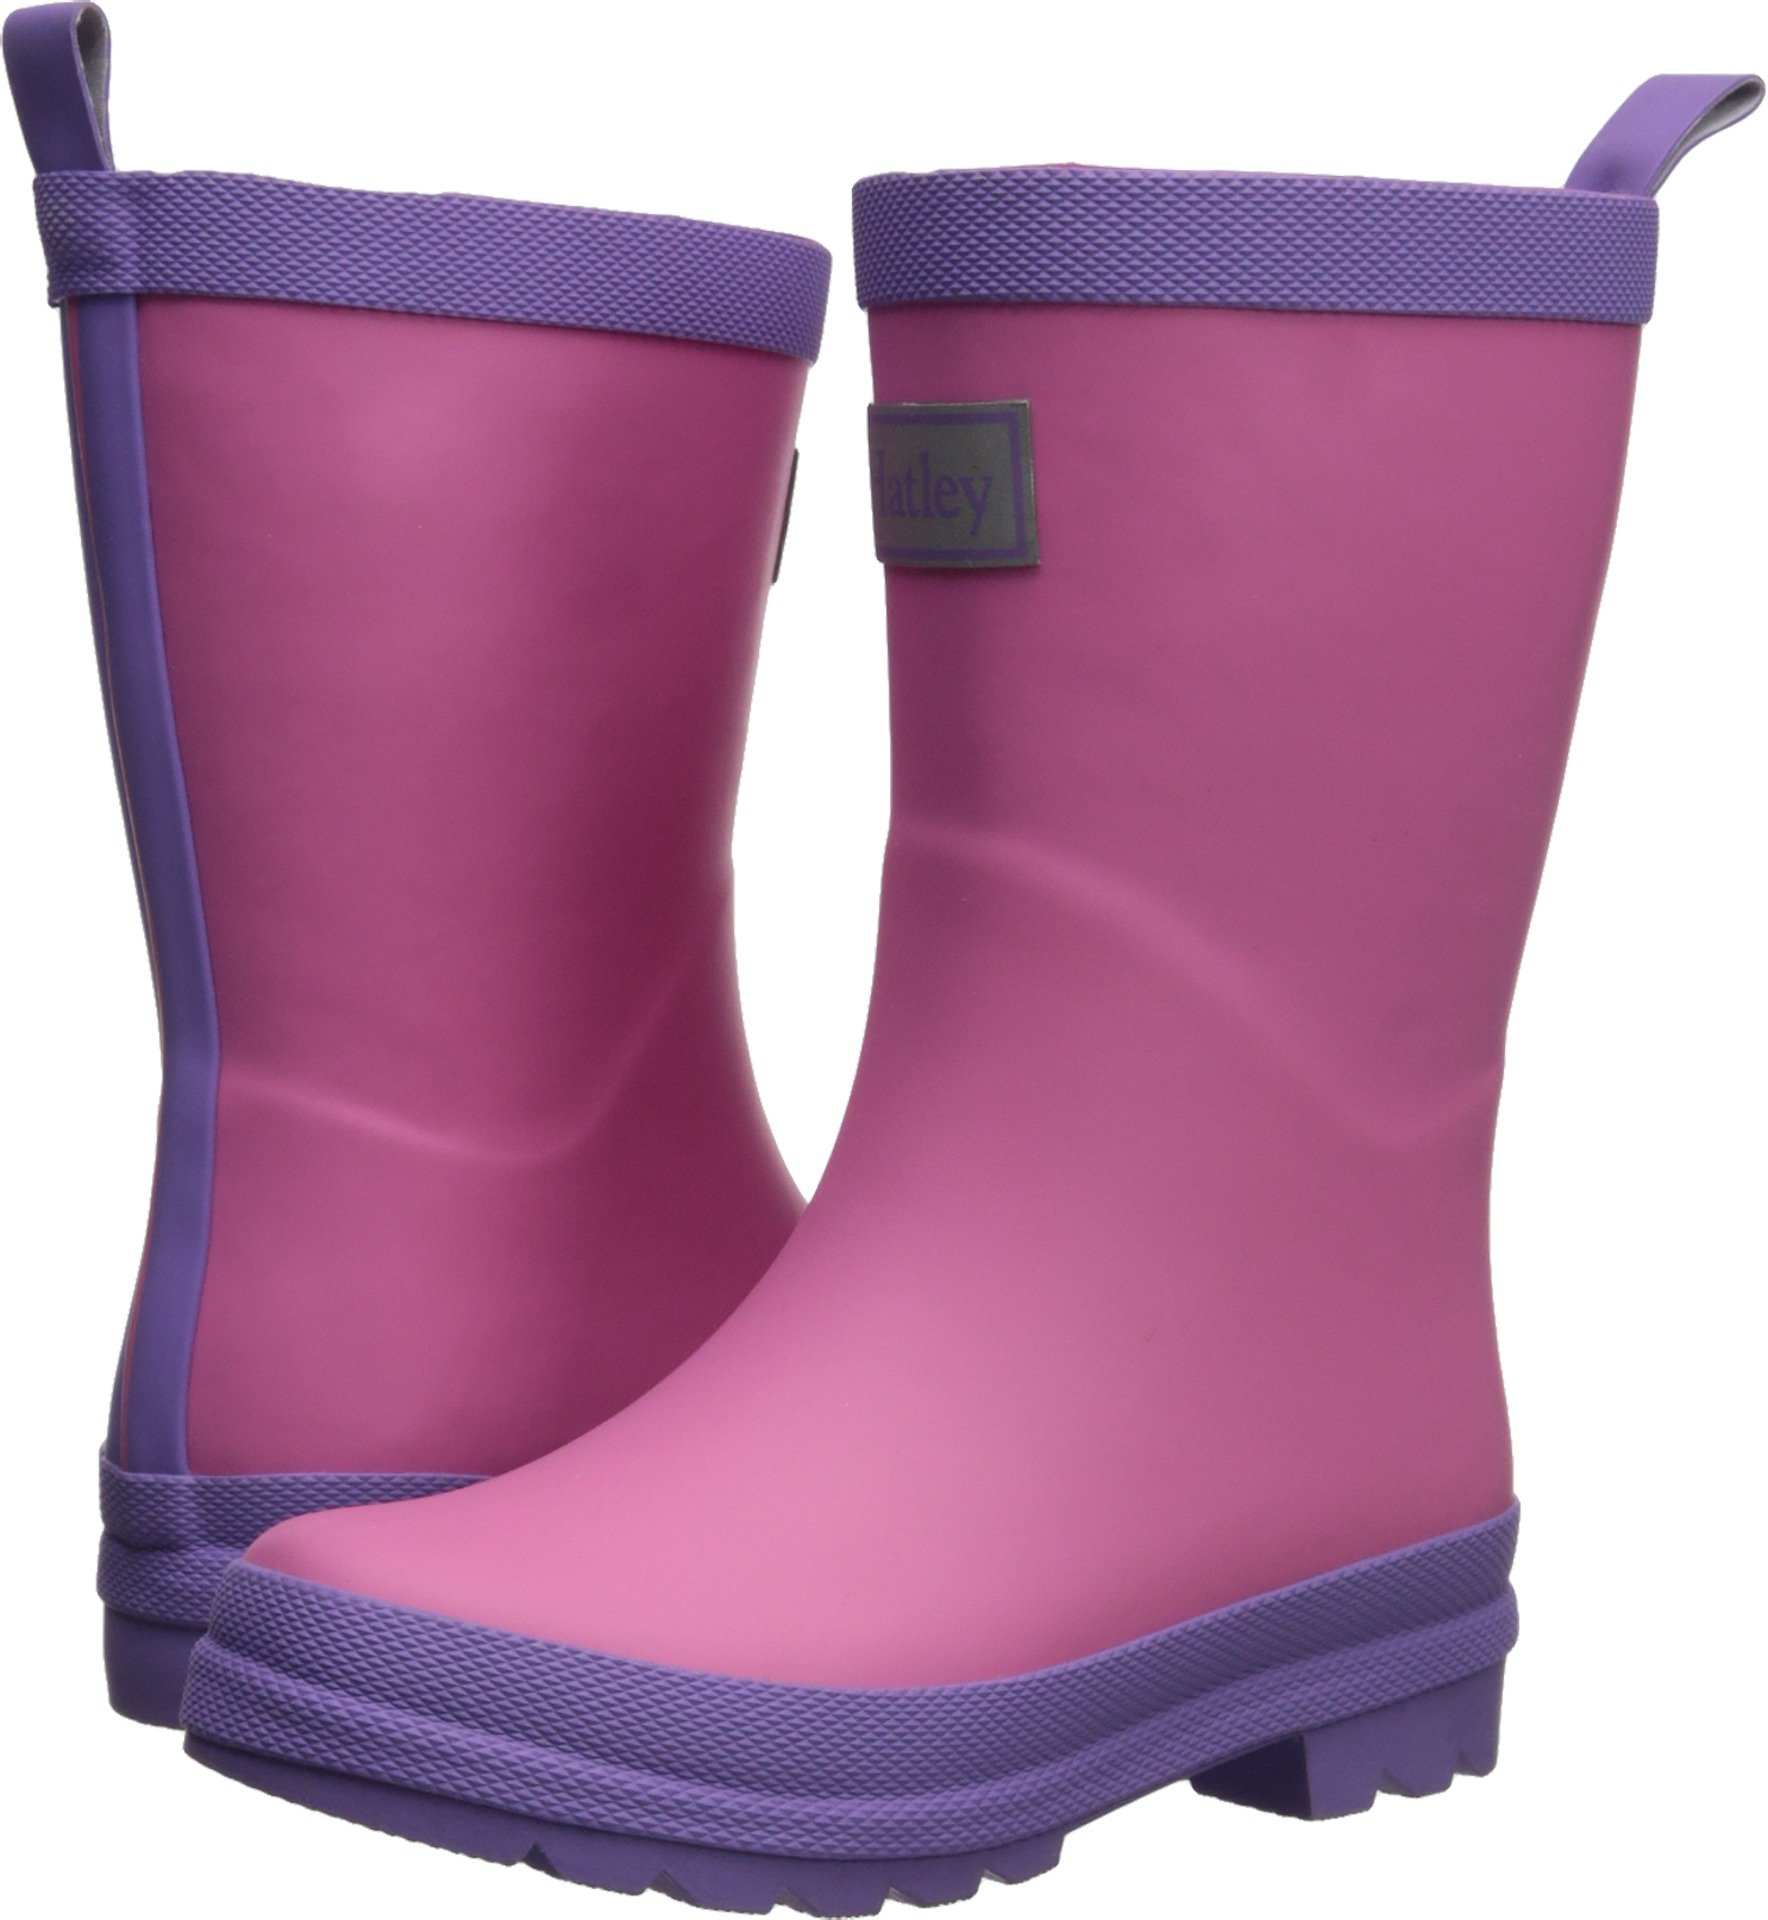 Hatley Classic Rain Boots, Pink and Purple, 11 M US Little Kid